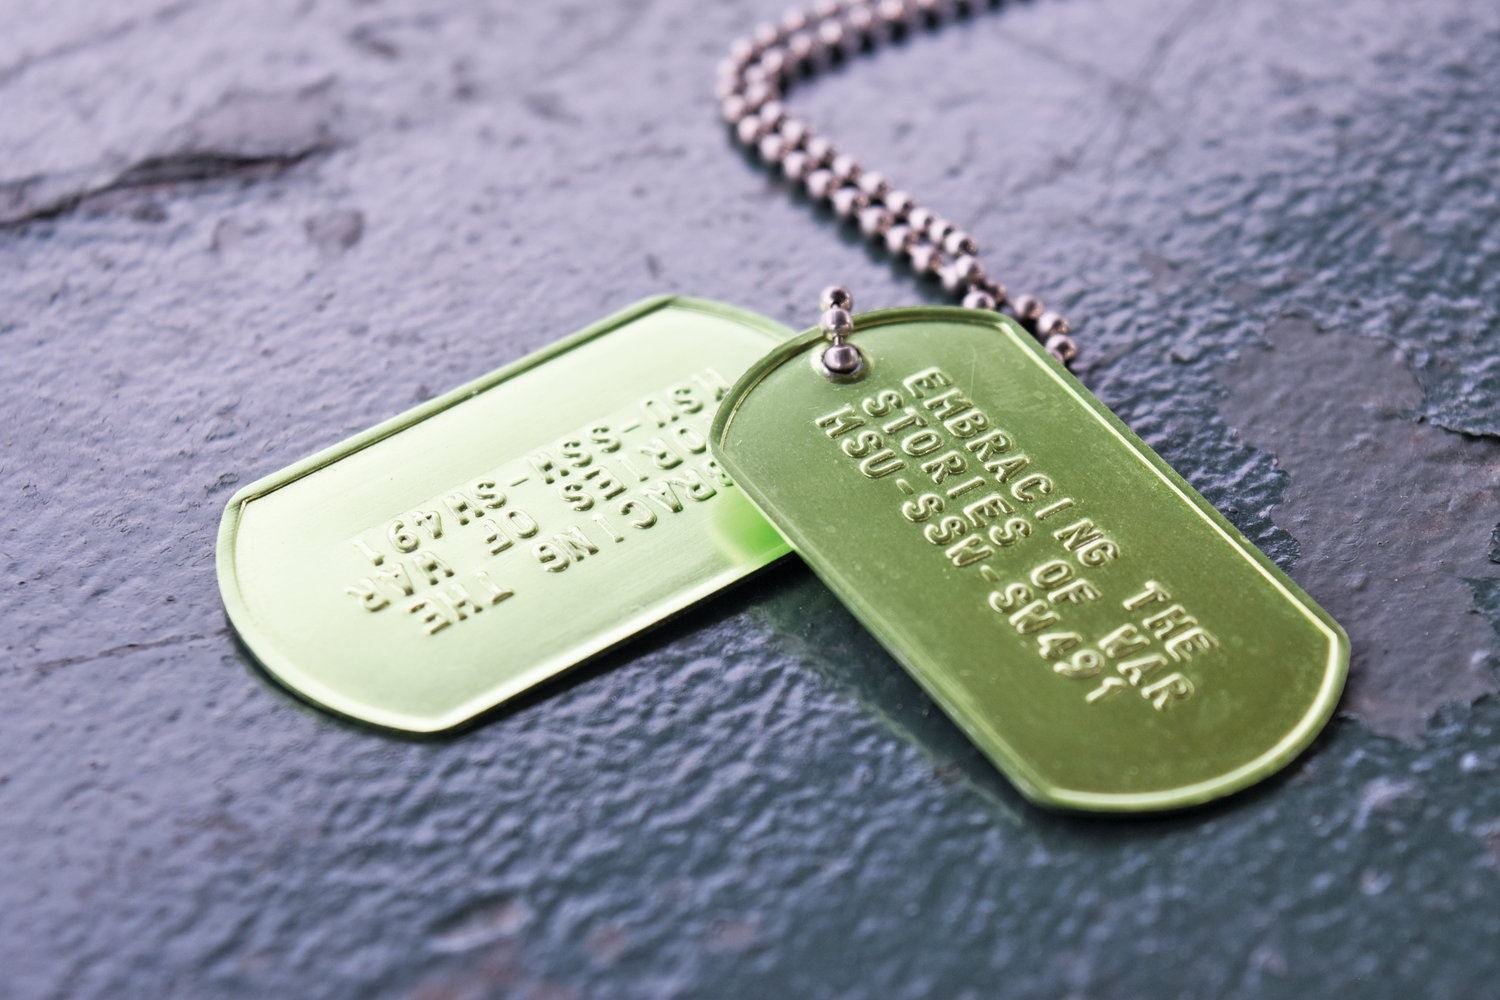 MSU's Combat Veteran Certificate course gives students a pair of green dog tags.